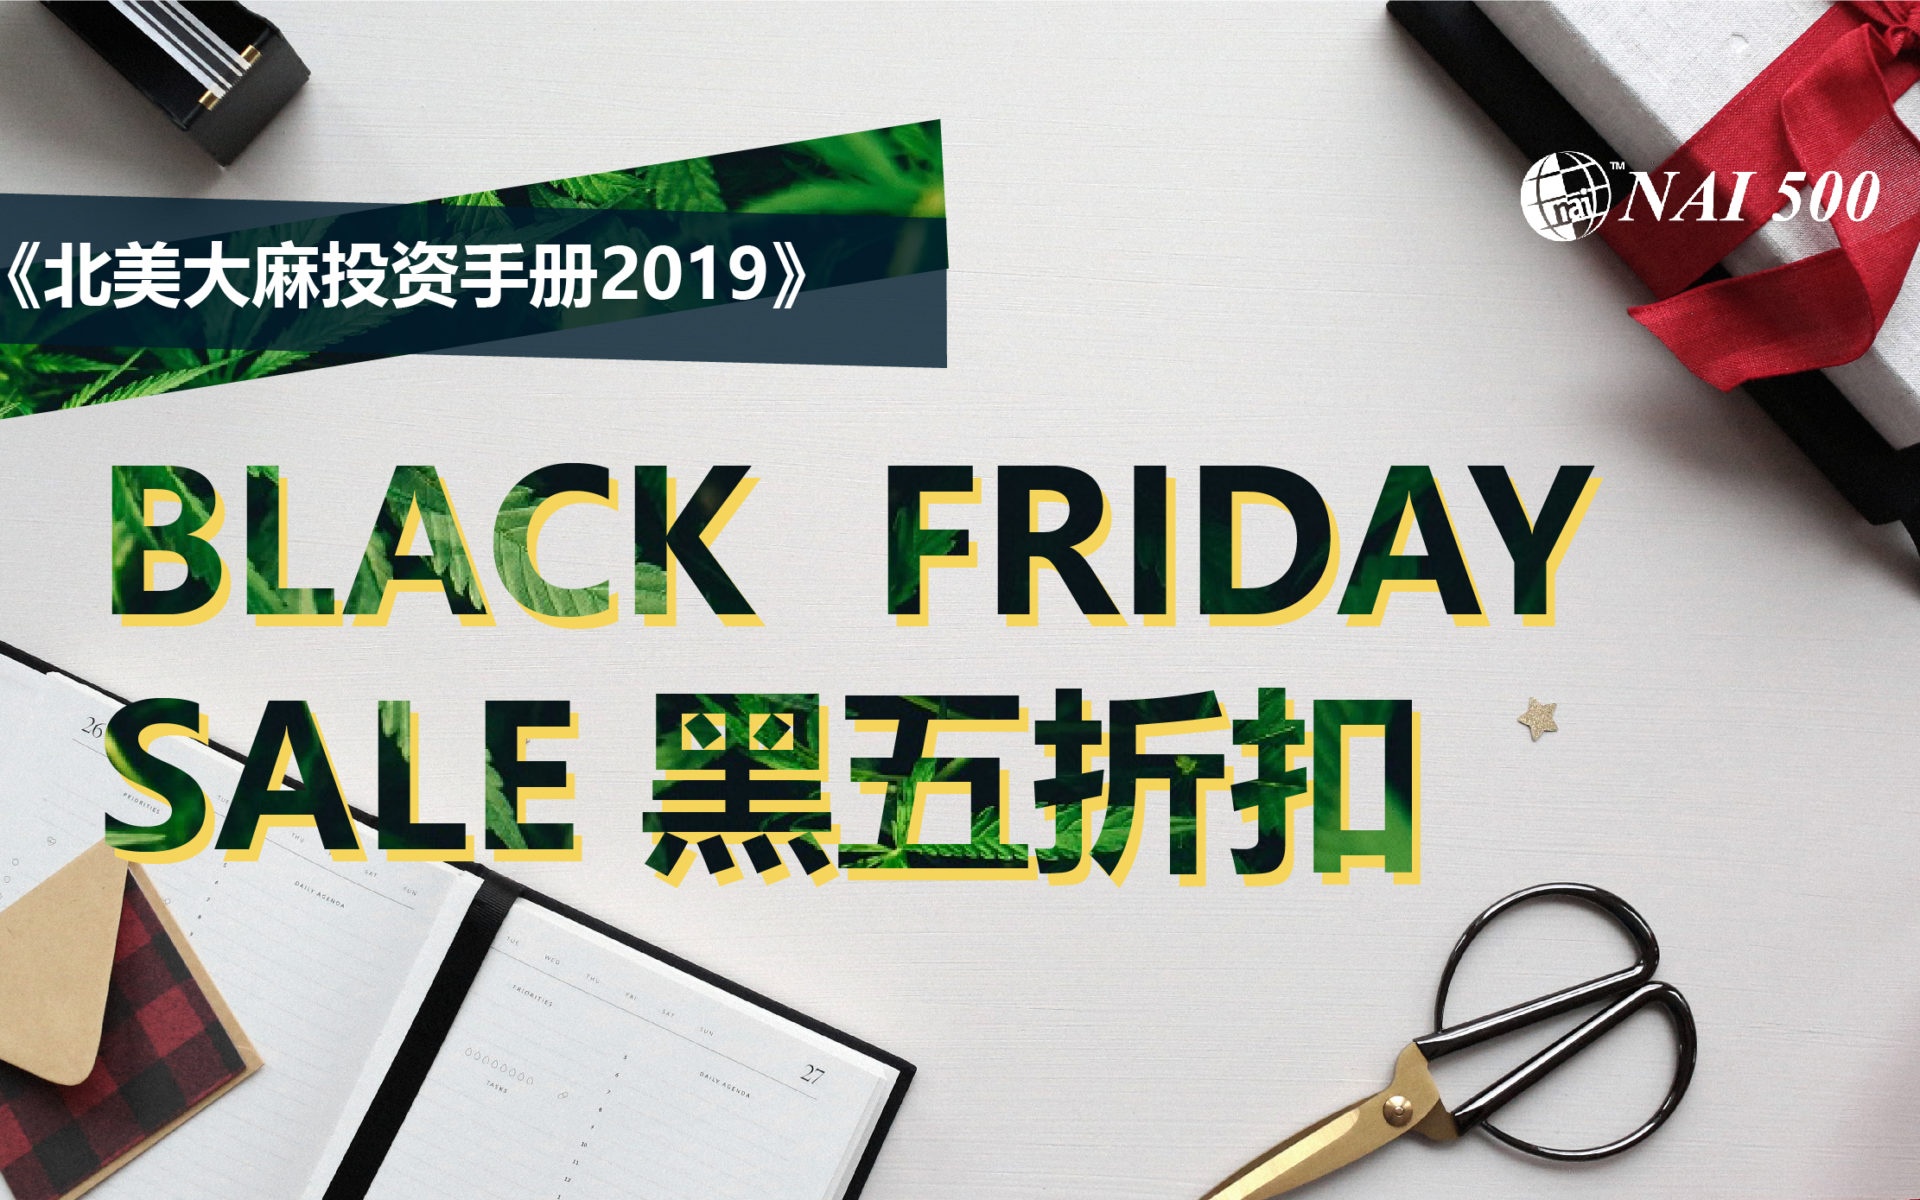 Black Friday Sale - Cannabis Book 2019_WeChat Cover Sch